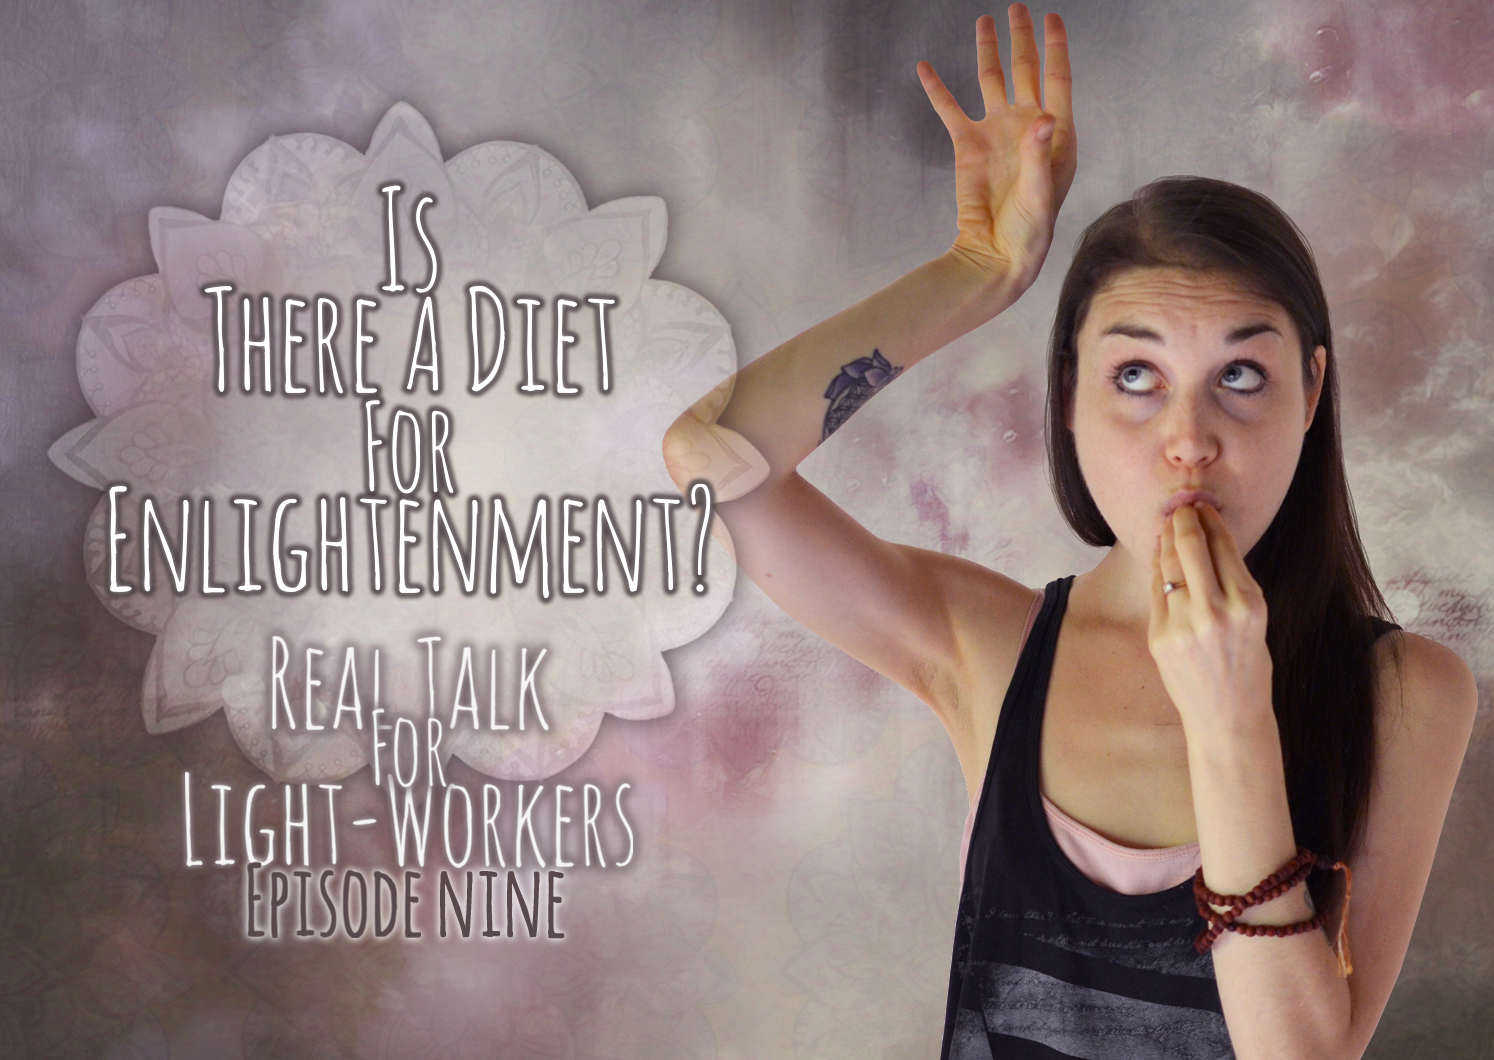 Real Talk For Light Workers Episode 9: Is There A Diet For Awakening?